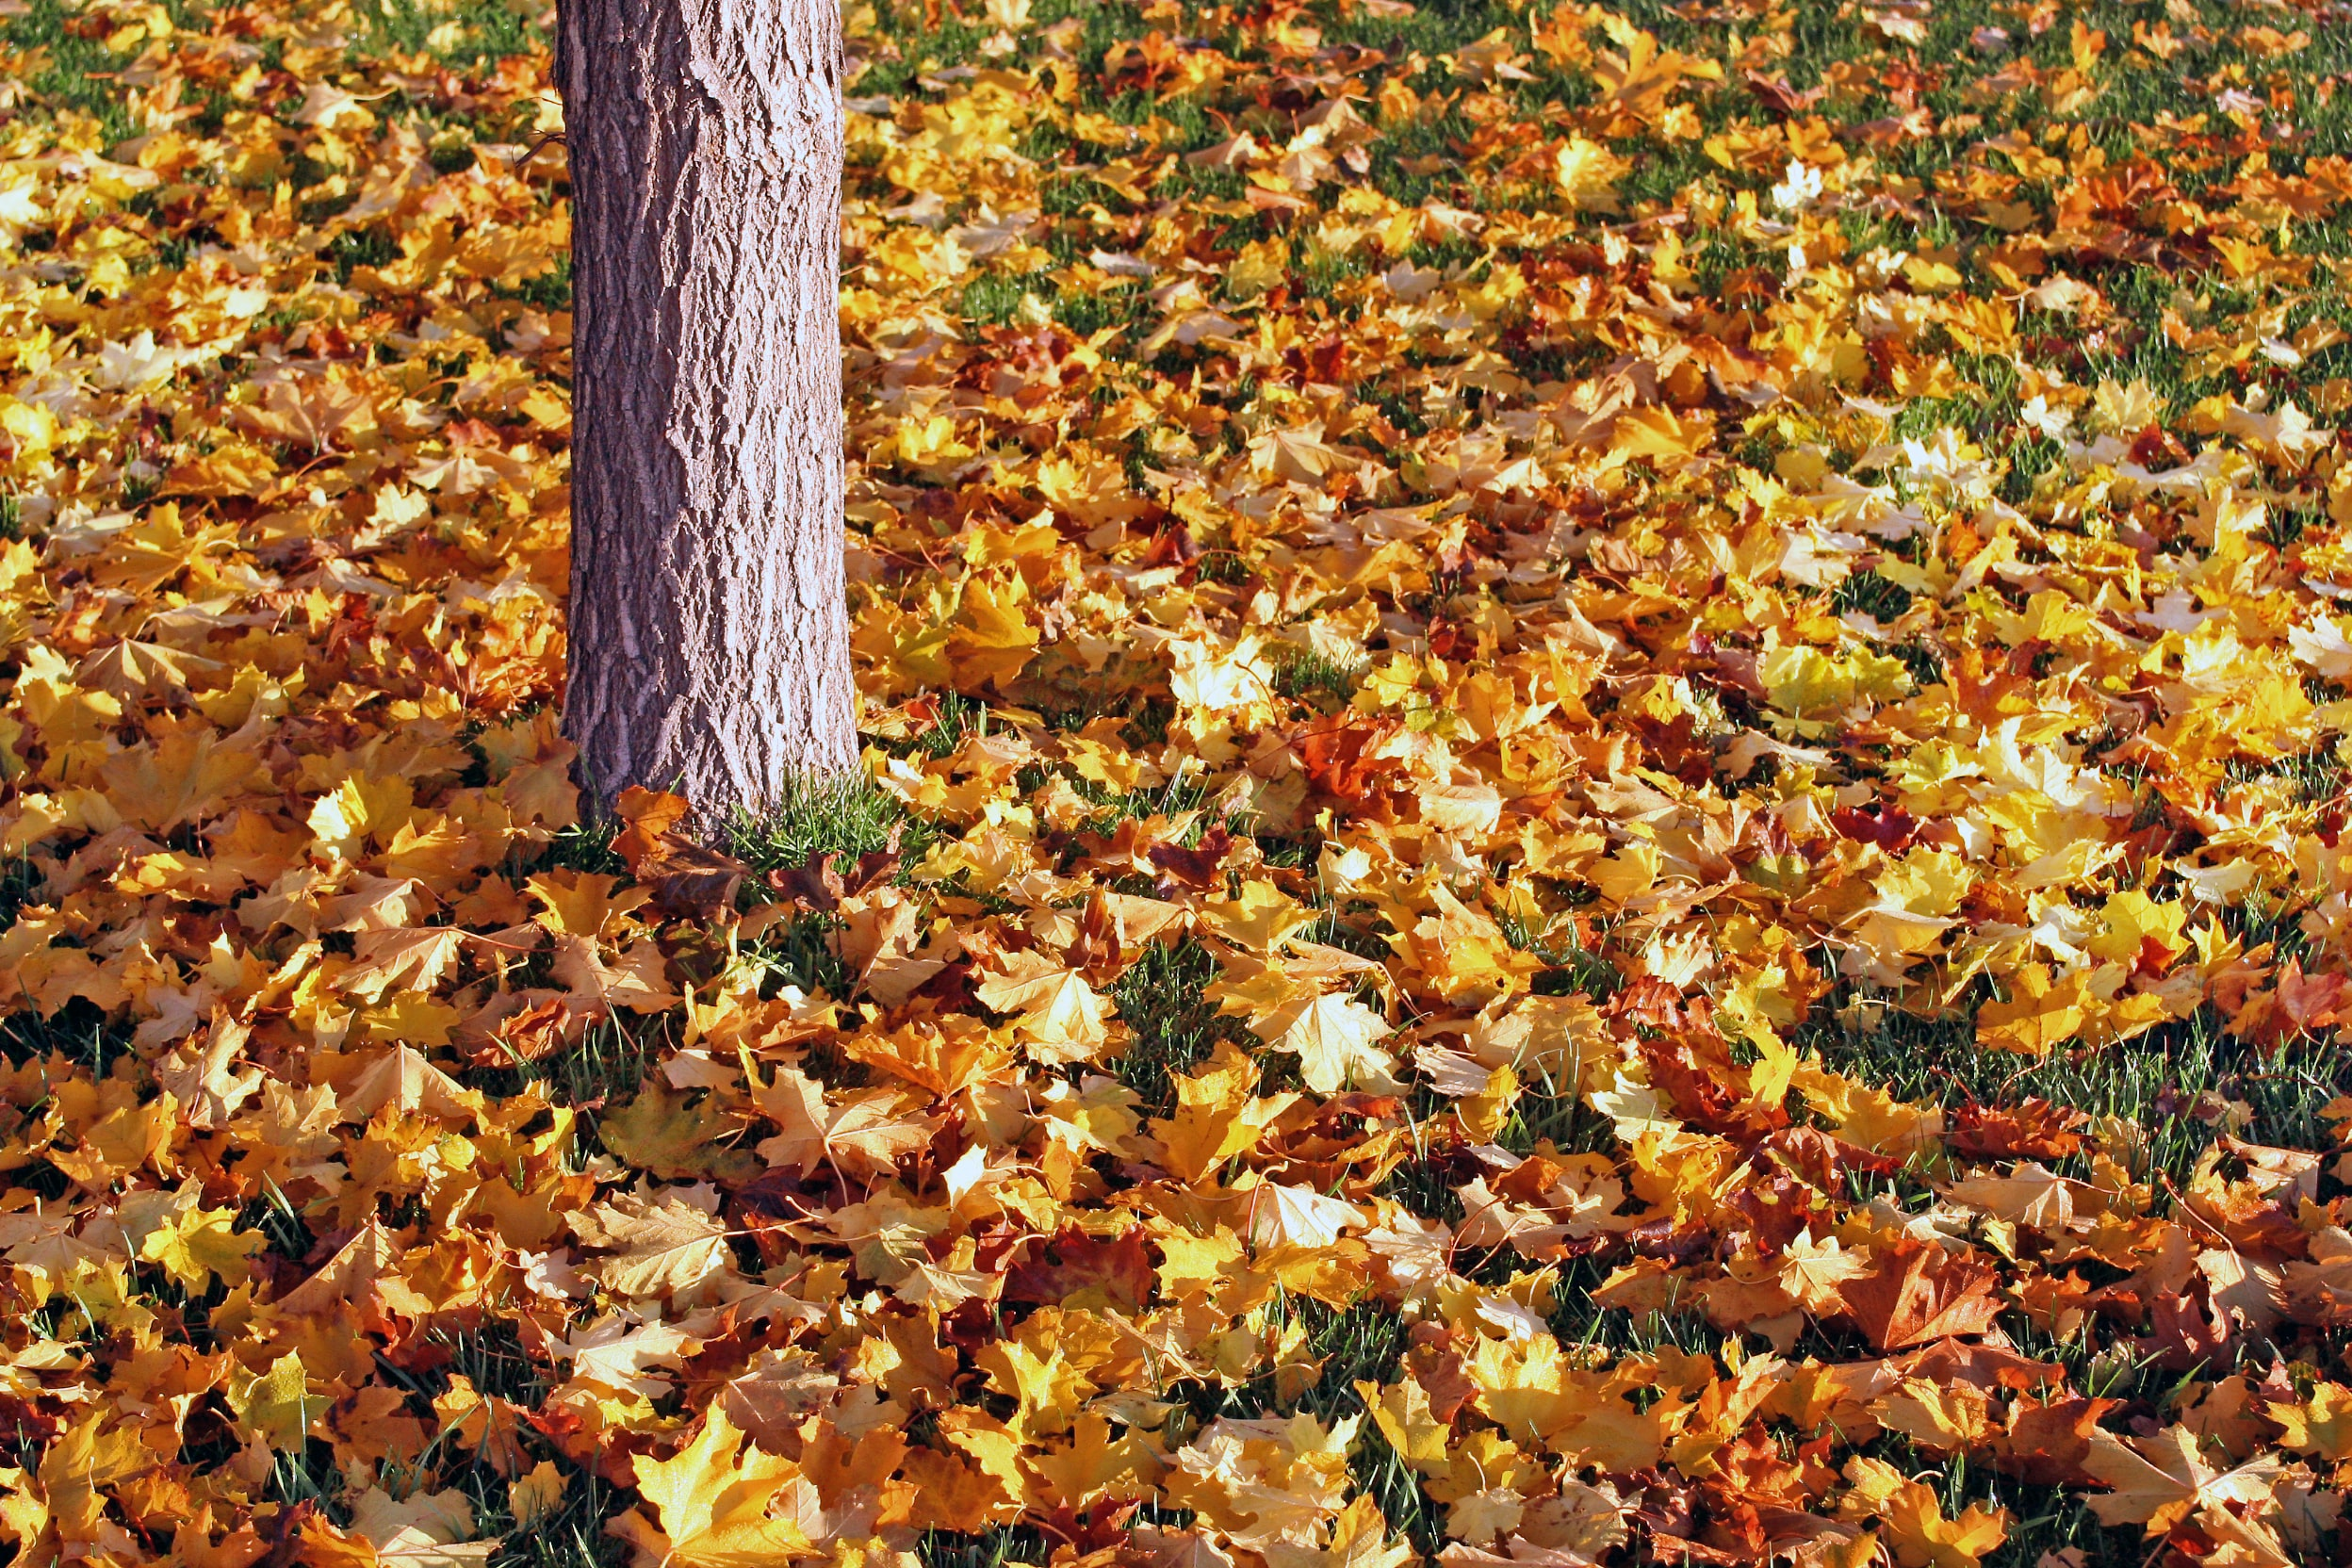 Fall leaves on the ground next to a tree stump on English ranch